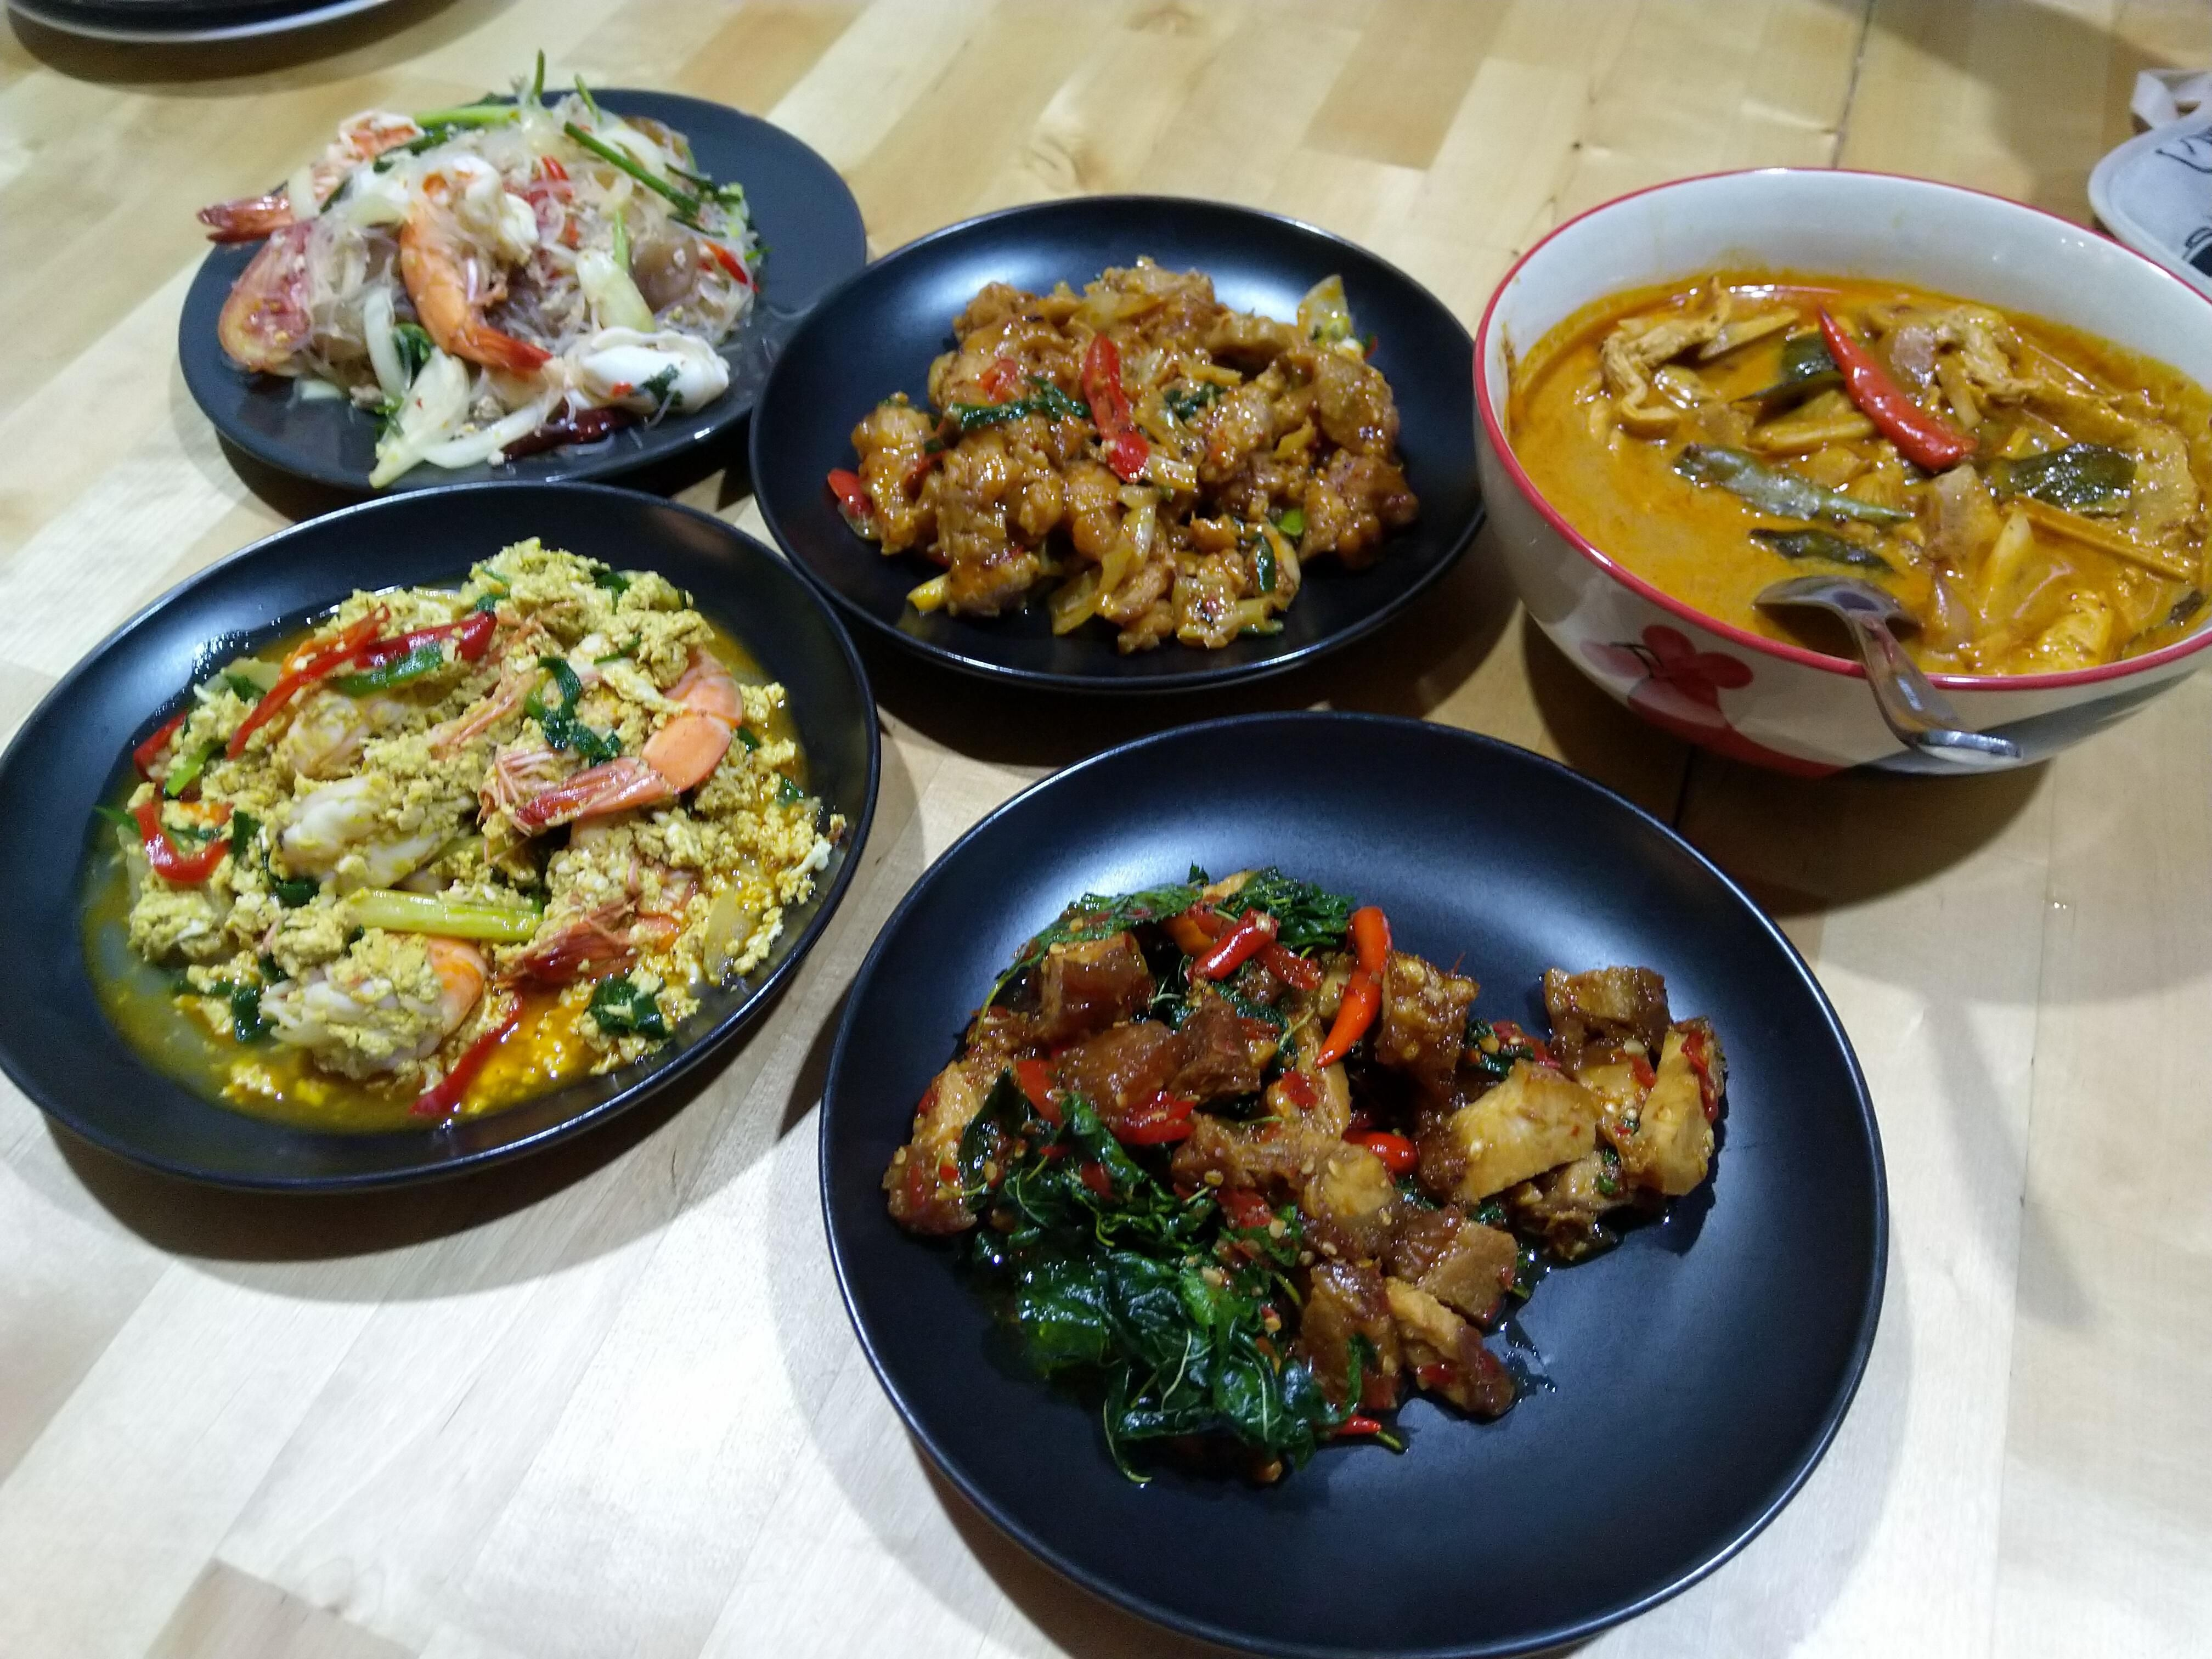 [HOMEMADE] Spicy seafood salad stir fry shrimp with curry powder cashew chicken stir fry basil with crispy pork and tom yum chicken. #food #foods #stirfryshrimp [HOMEMADE] Spicy seafood salad stir fry shrimp with curry powder cashew chicken stir fry basil with crispy pork and tom yum chicken. #food #foods #stirfryshrimp